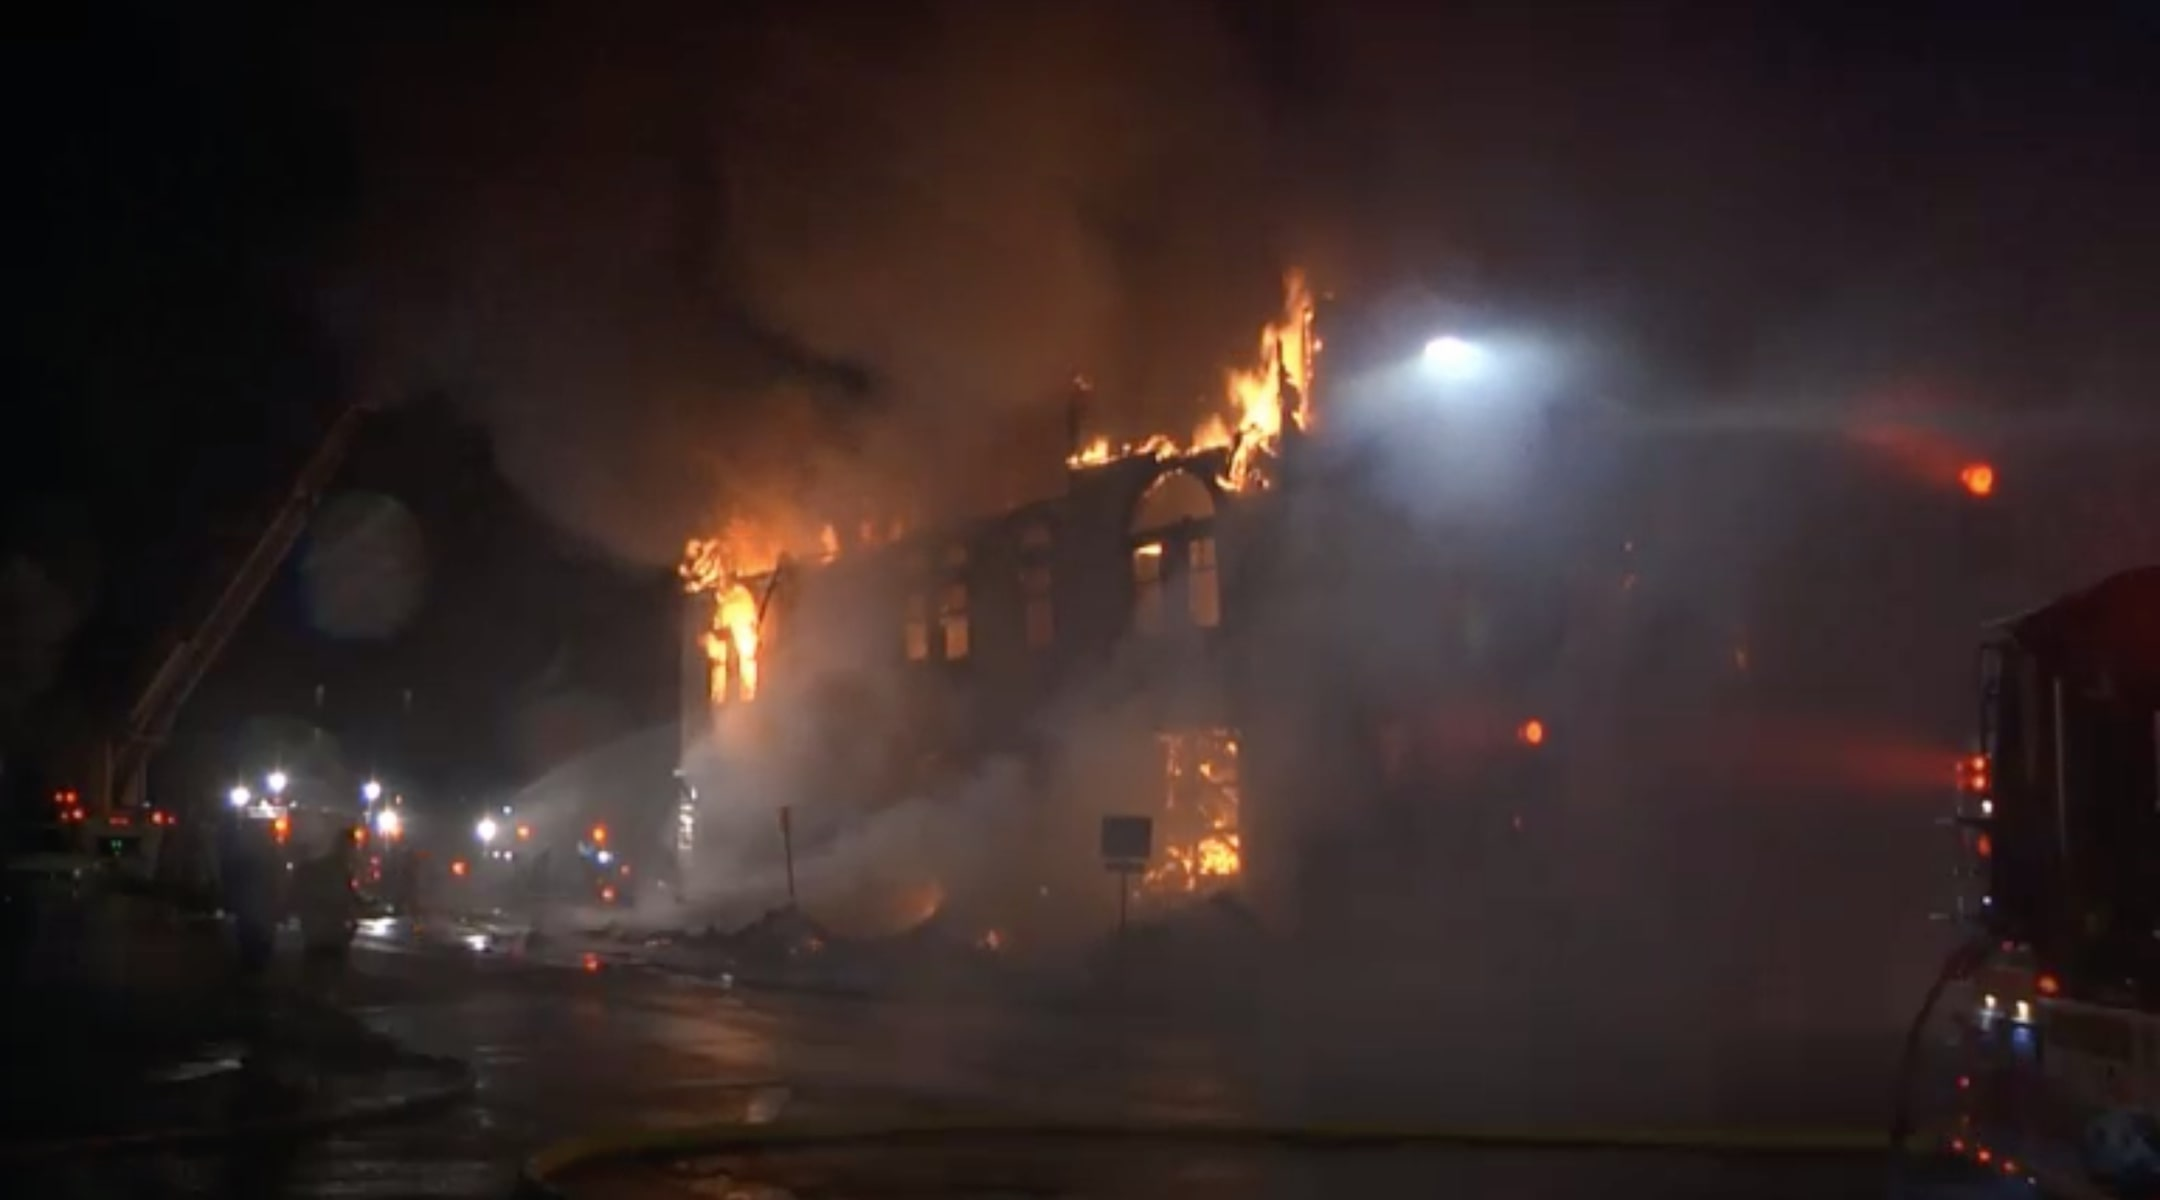 Adas Israel Synagogue Of Minnesota Goes Up In Flames - Vos